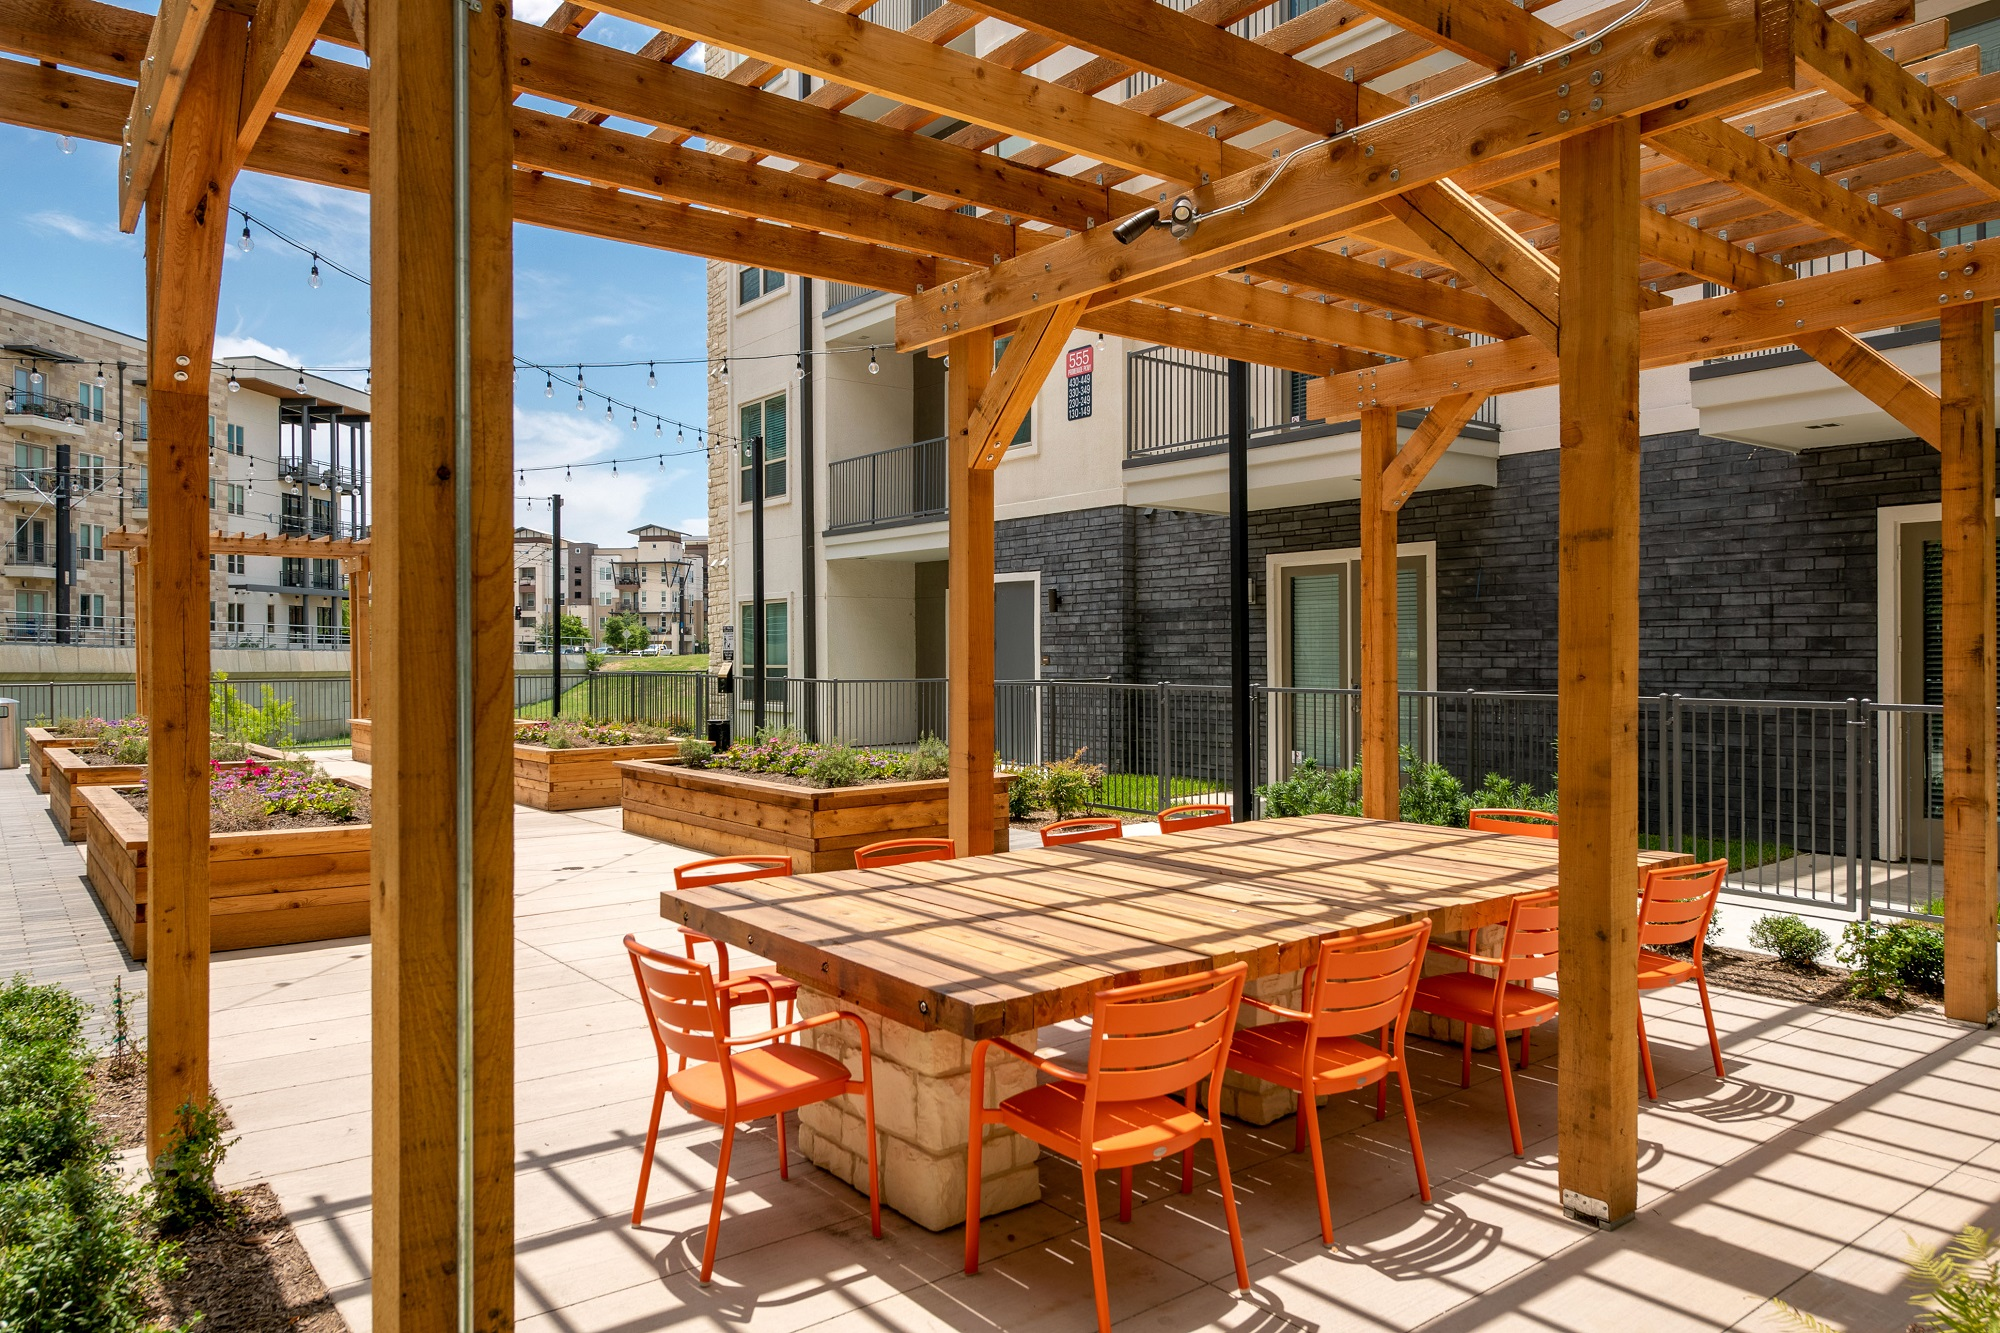 outdoor area with large wooden table, seating, and wood pergola and planters